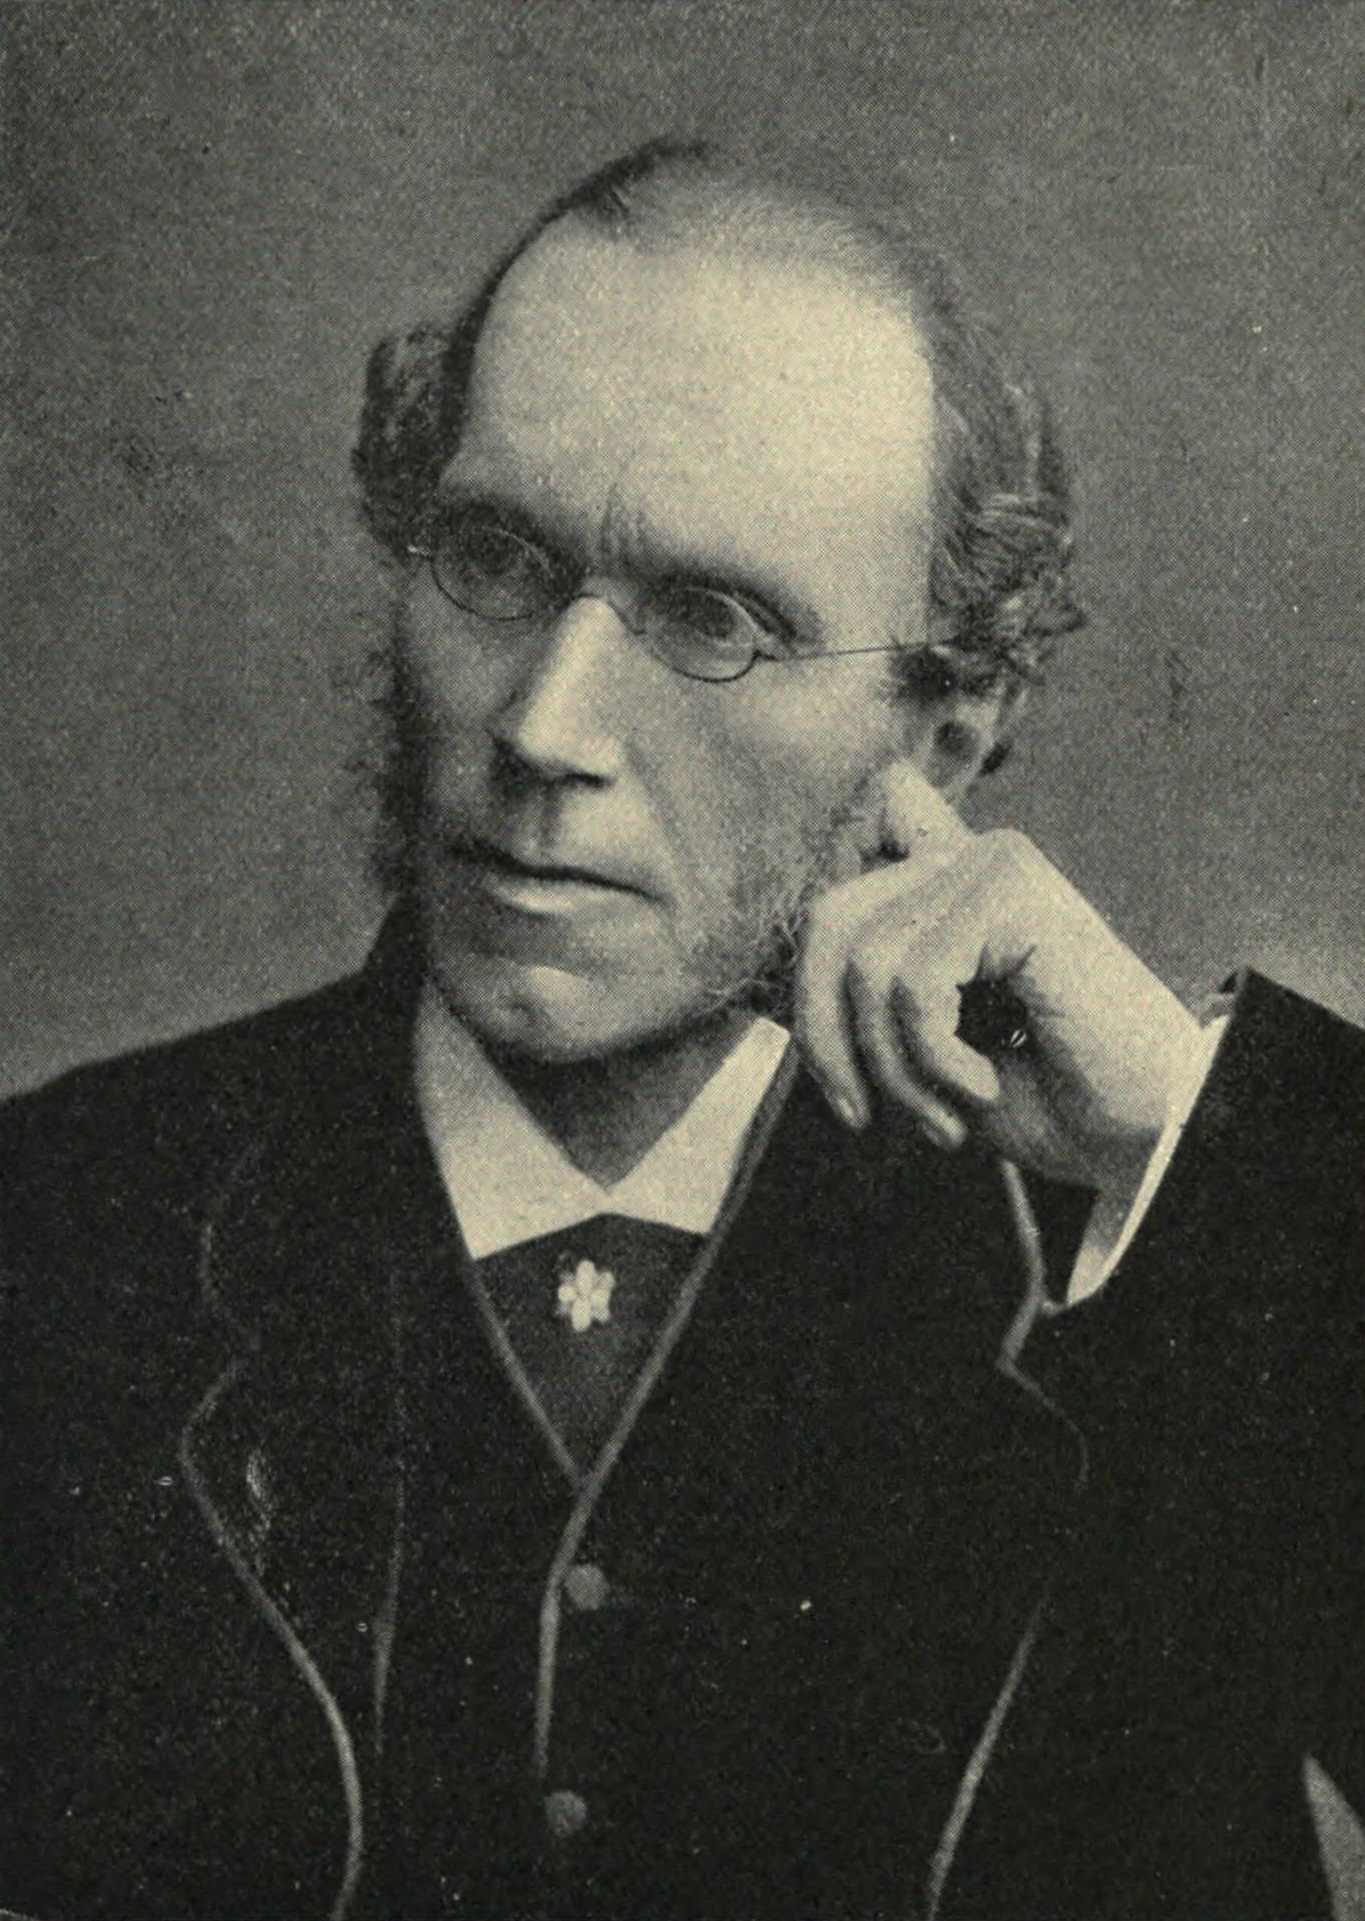 James Payn (1830-1898), English editor and novelist, married Miss Louisa Adelaide Edlin (b. 1830 or 1831). They had nine children, the third of whom, Alicia Isabel (died 1898), married The Times editor George Earle Buckle. Payn edited Chamber's Journal 1860-1875. In the pages of the Journal he published in 1864 his most popular story, 'Lost Sir Massingberd'. In 1883 he succeeded Leslie Stephen as editor of the Cornhill Magazine [https://upload.wikimedia.org]